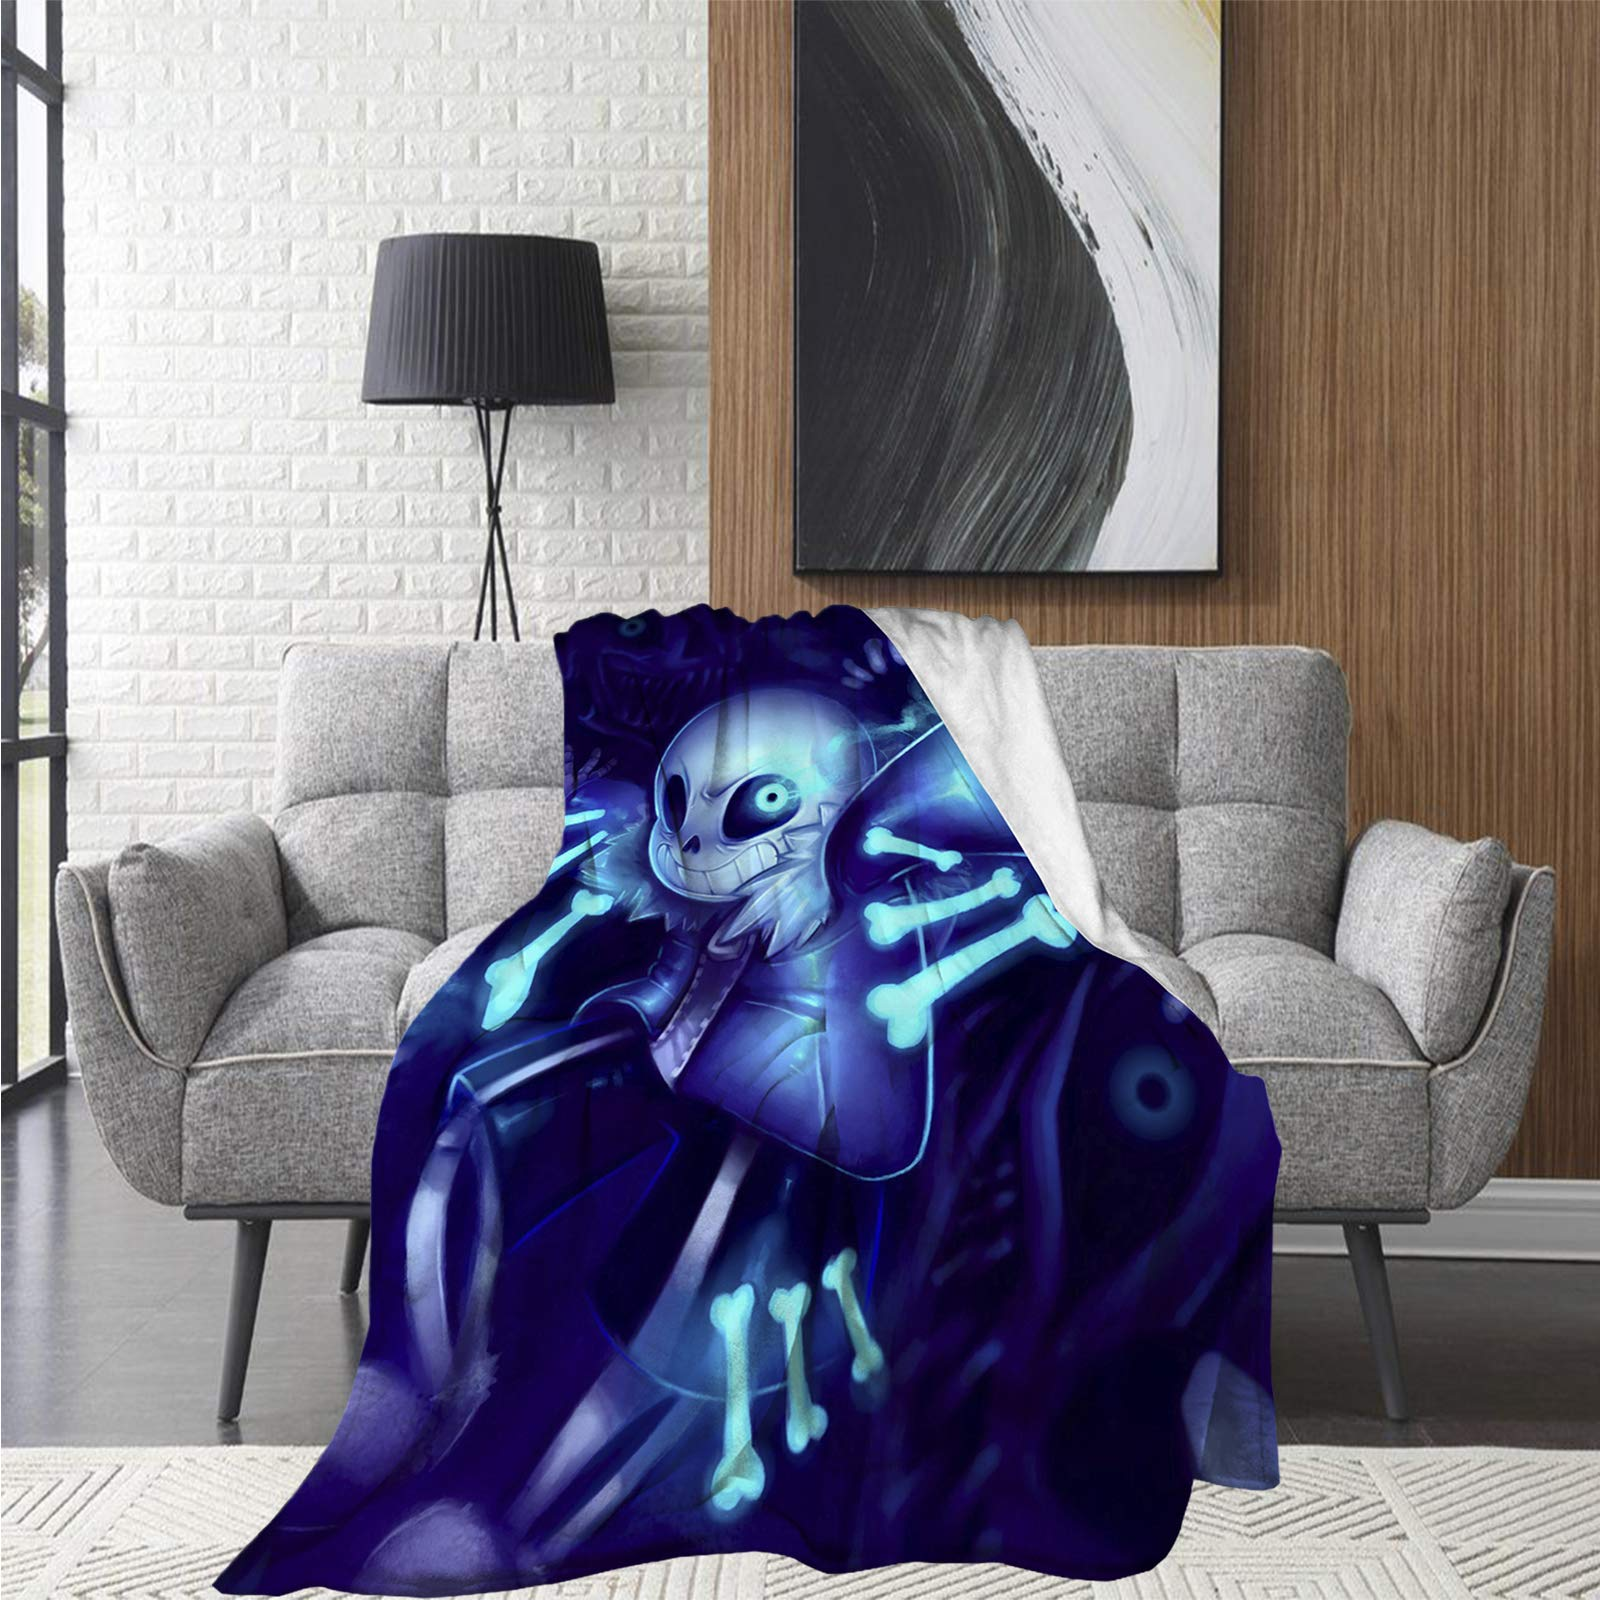 Yuanjutang Undertale Sans Ultra-Soft Micro Fleece Blanket Home Cozy Warm Throw Blankets for Couch Bed Sofa 50